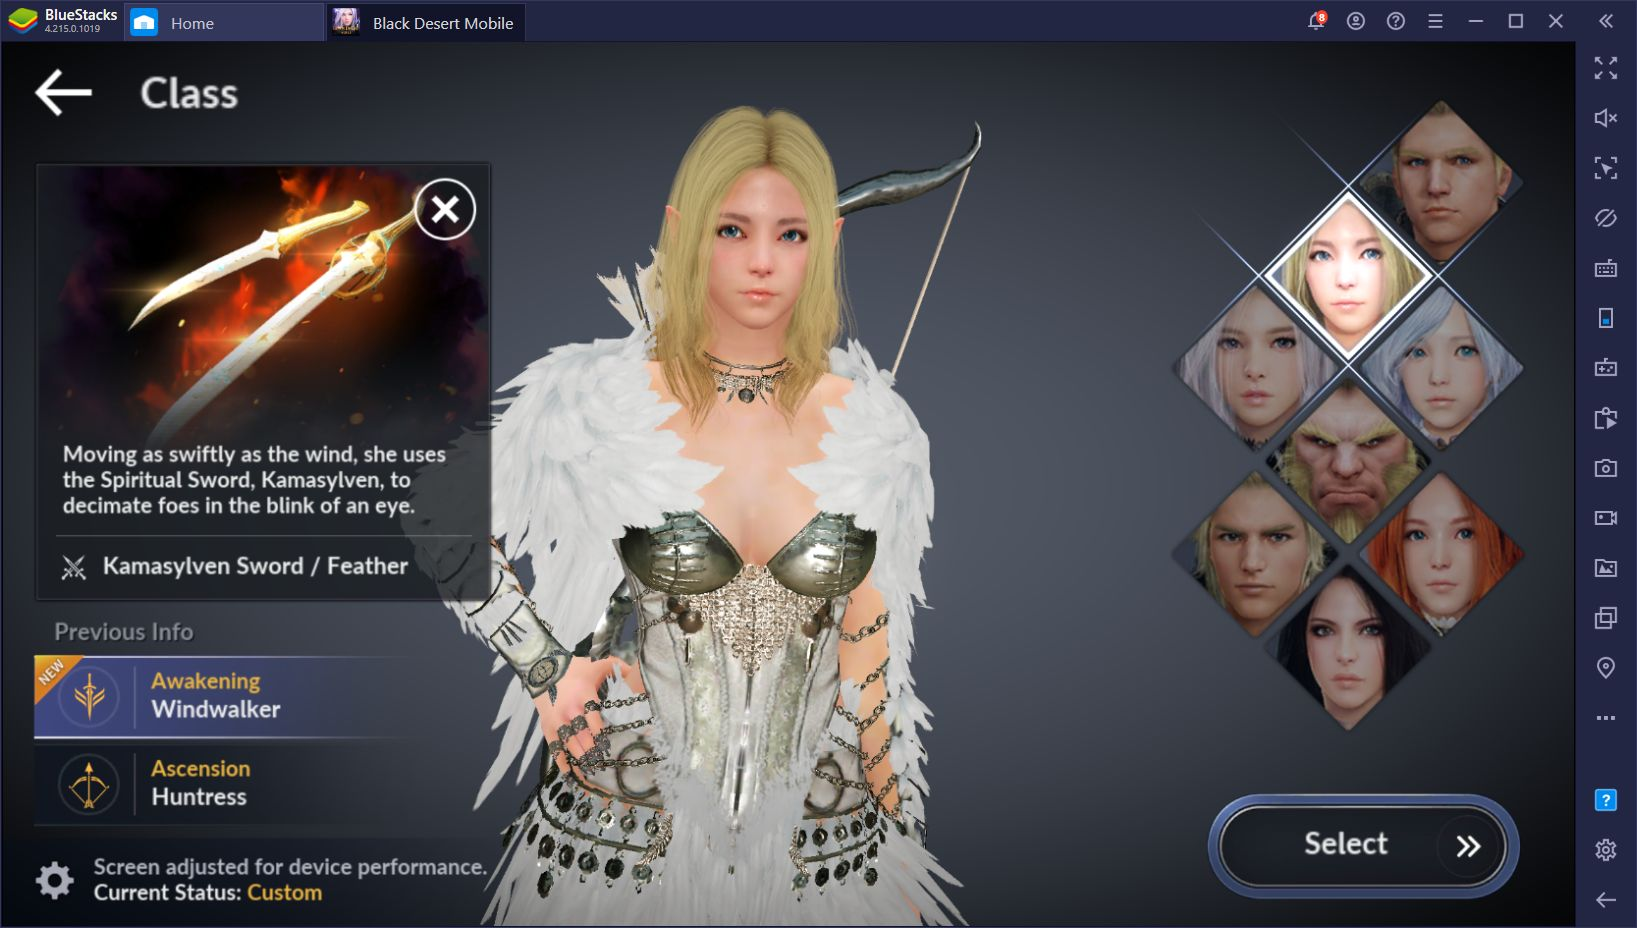 Black Desert Mobile Update Brings the Awakening System to the Popular MMORPG